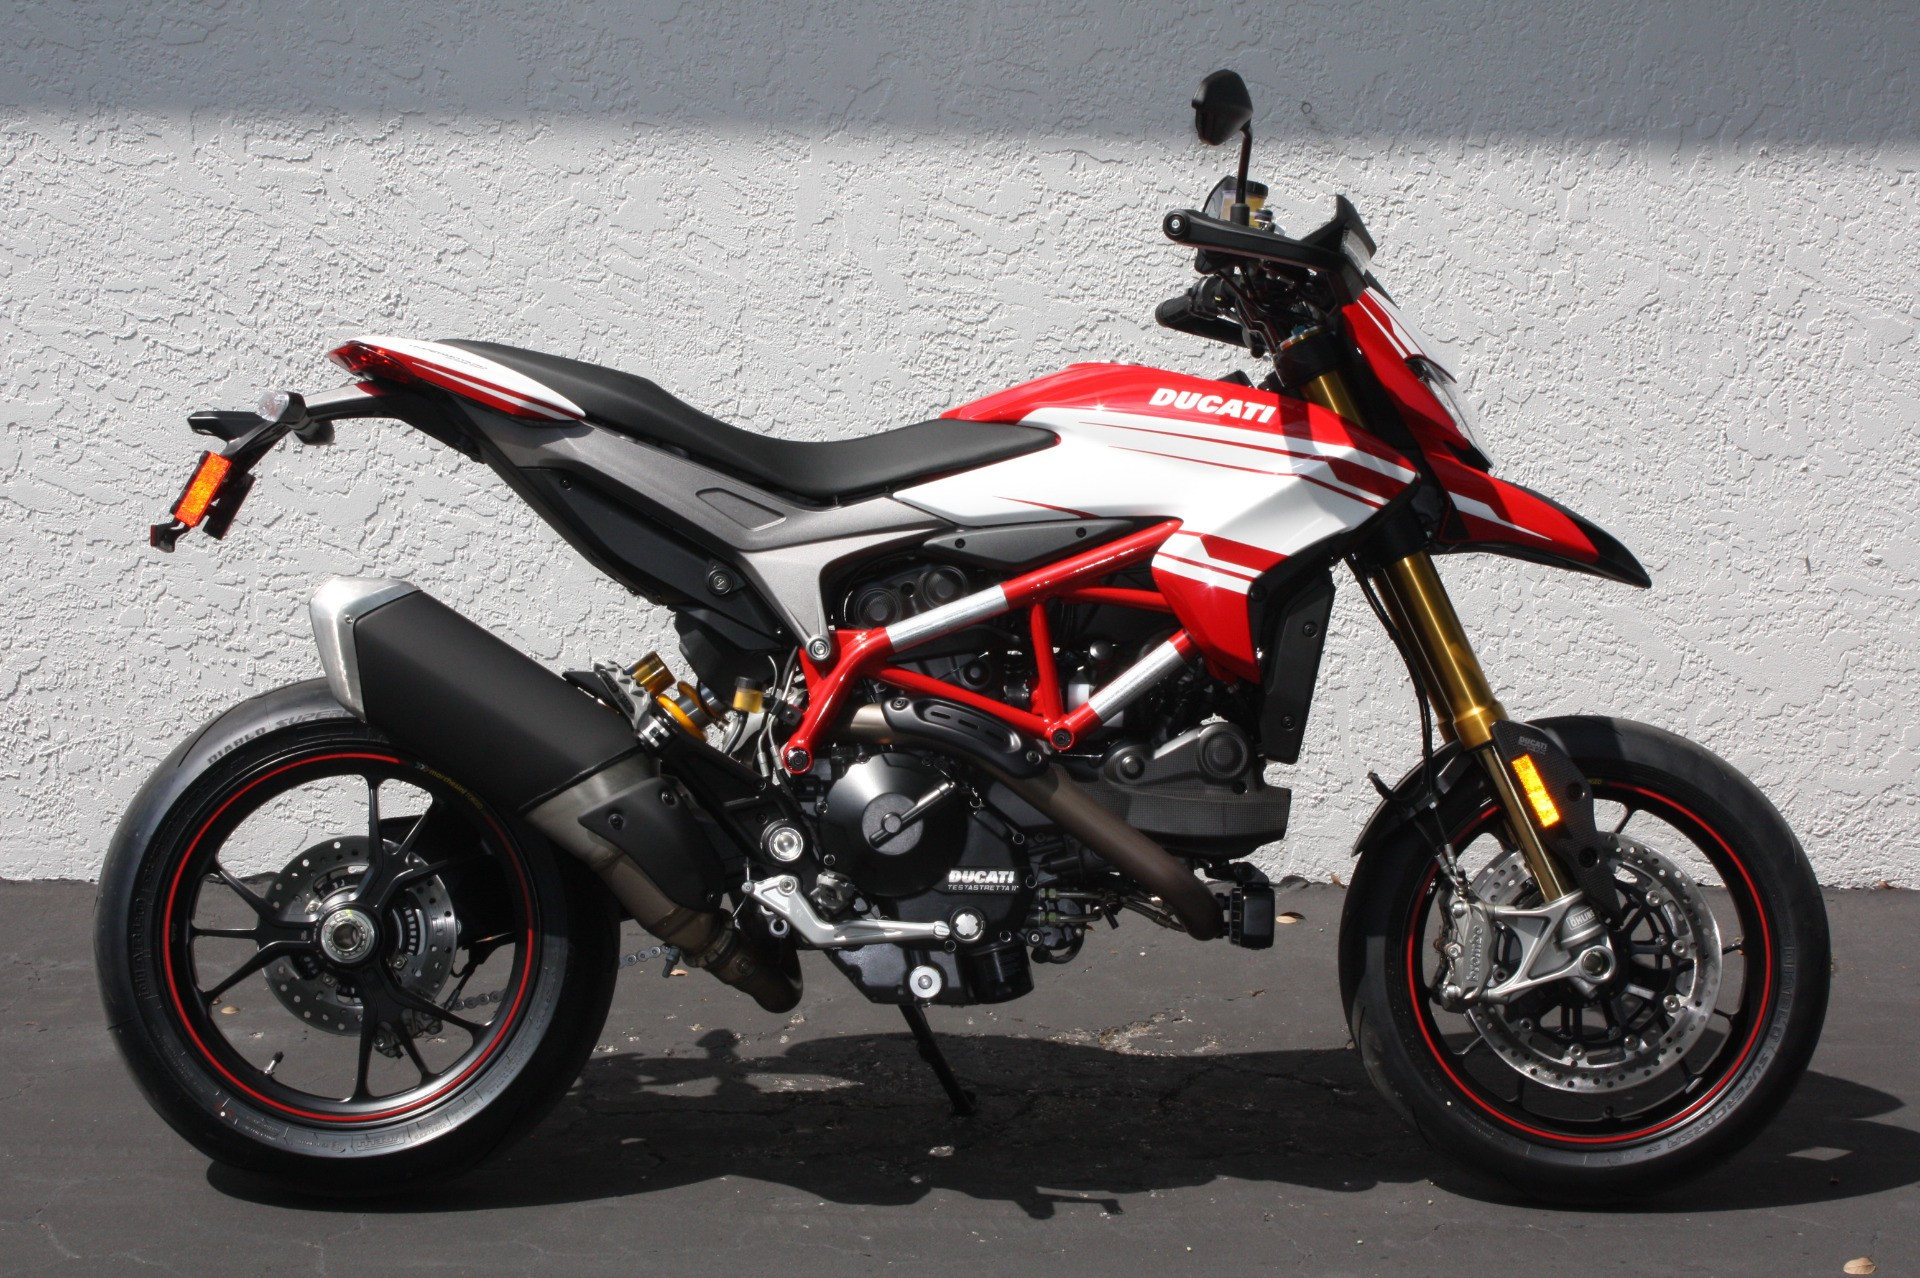 2016 ducati hypermotard 939 sp for sale fort myers fl. Black Bedroom Furniture Sets. Home Design Ideas